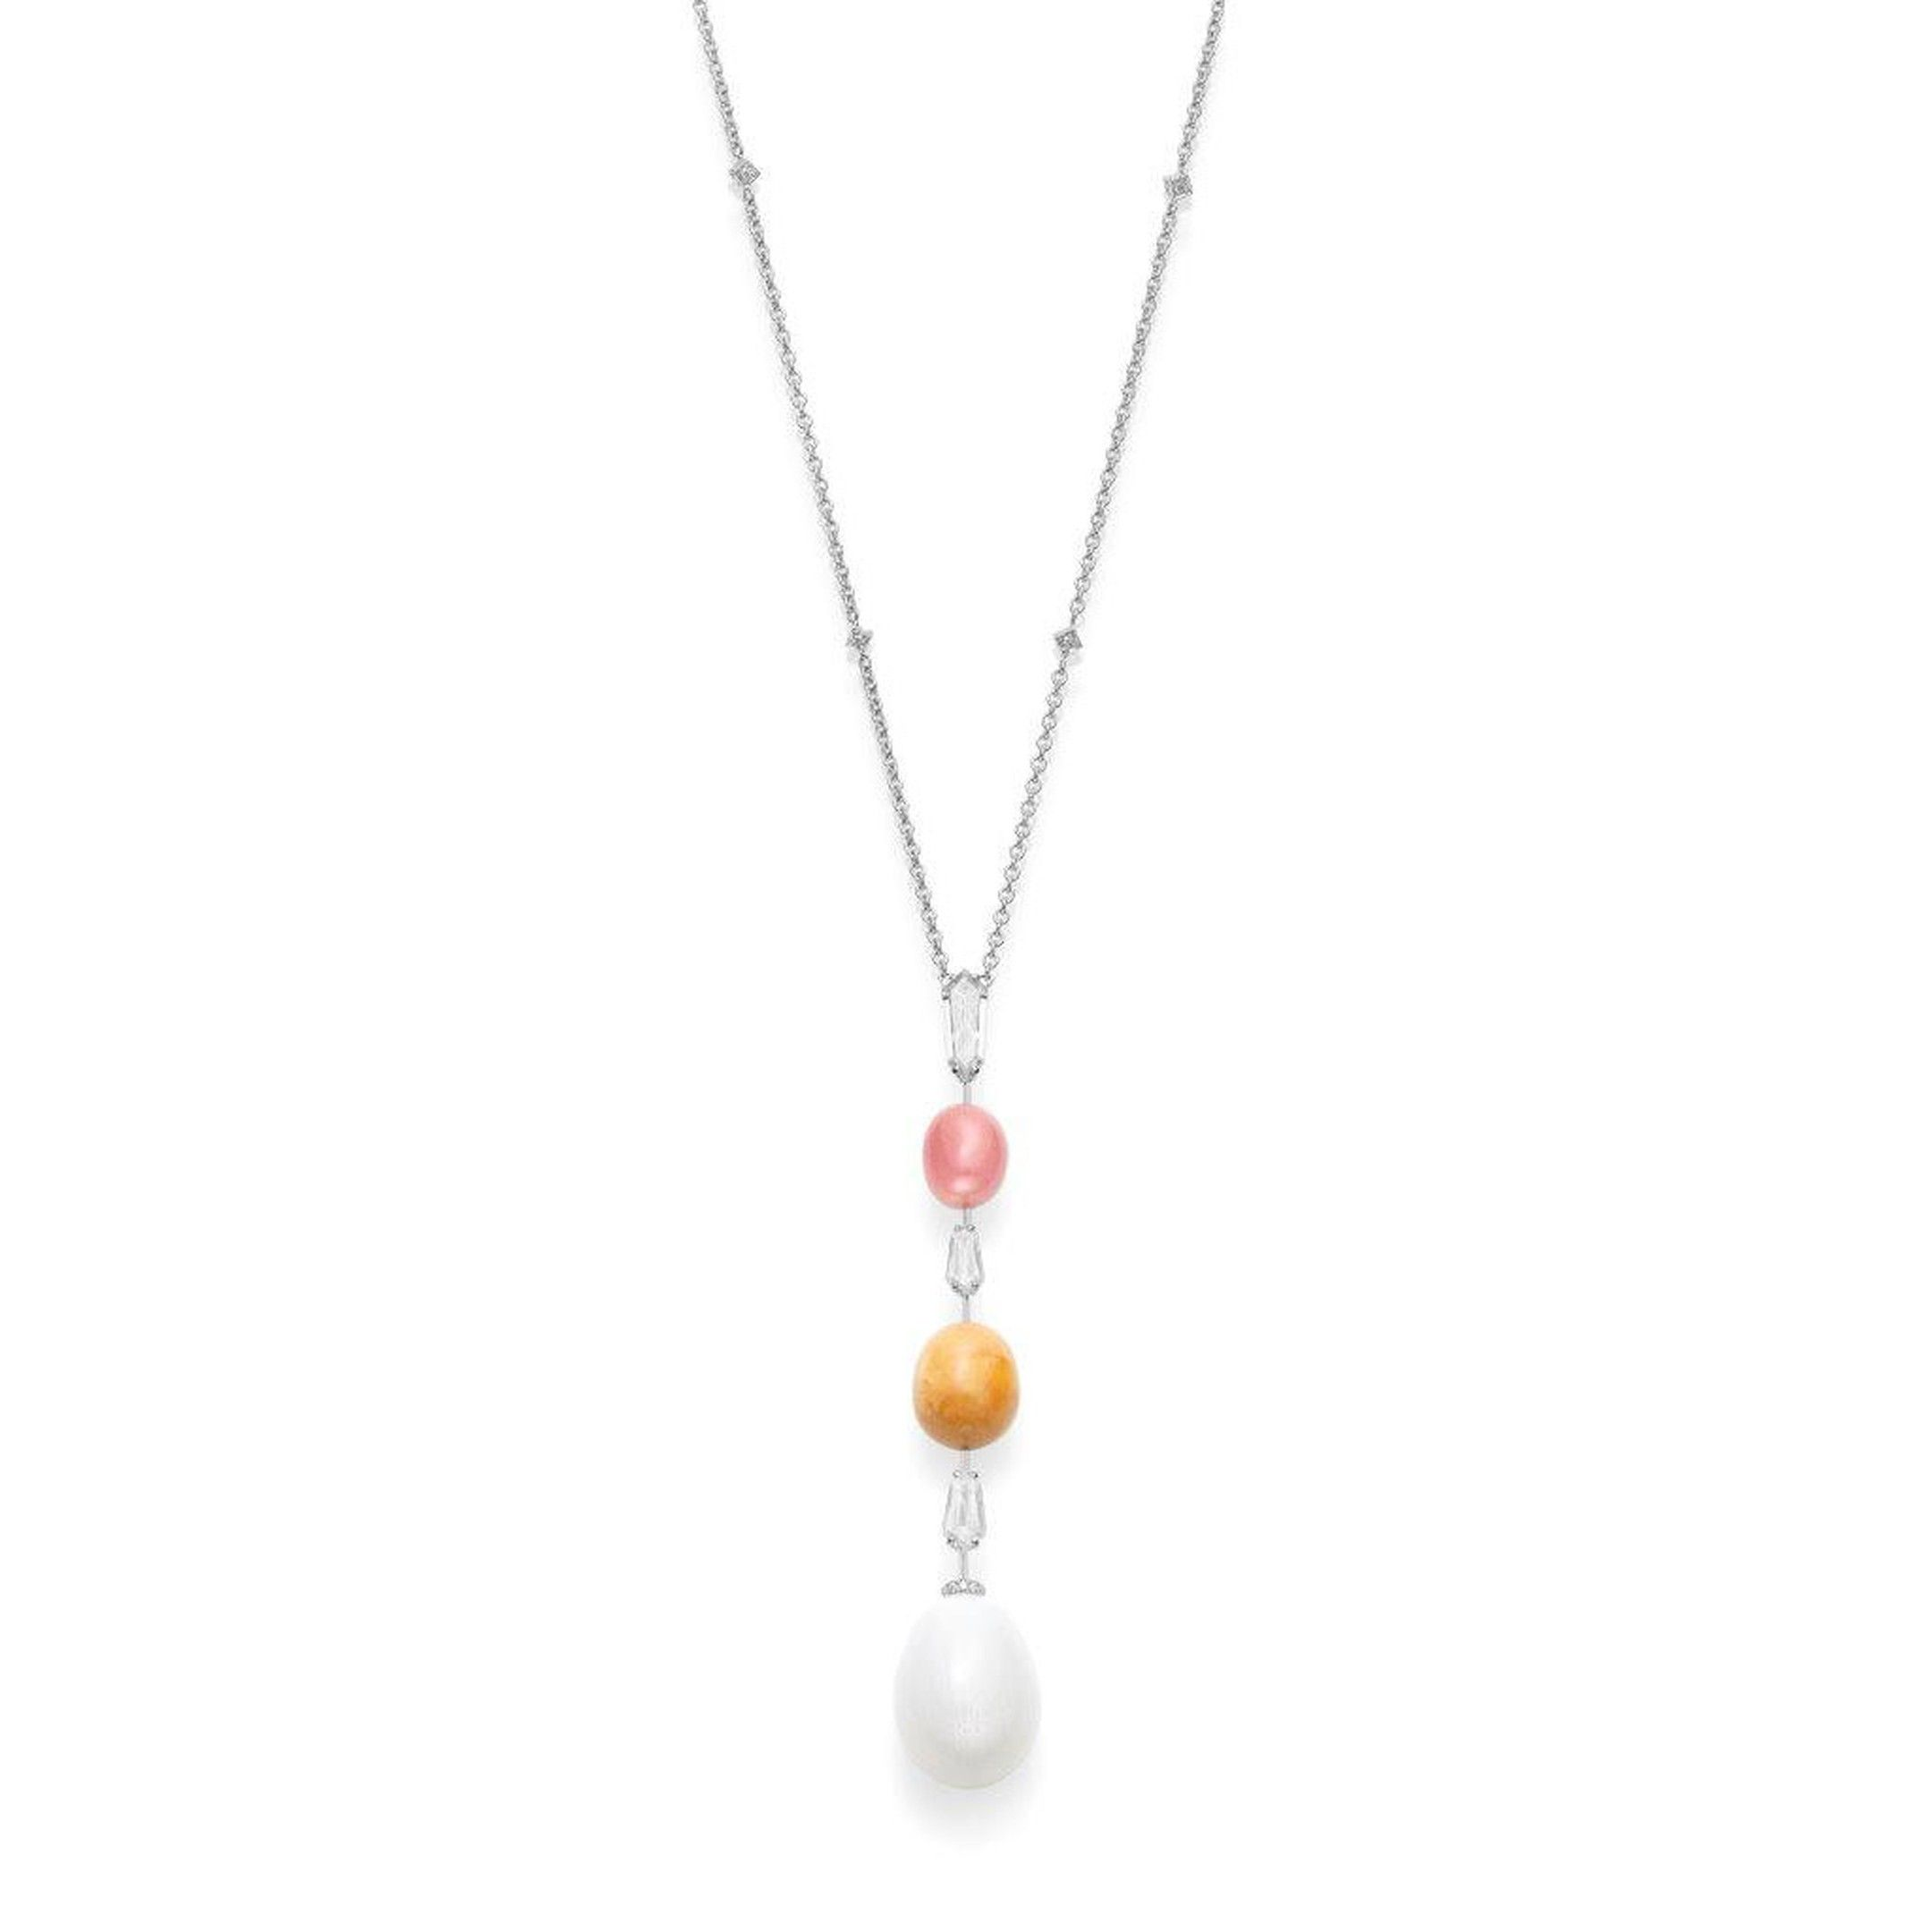 necklace strand master pendant j gold pearl more sale for mikimoto jewelry id necklaces at